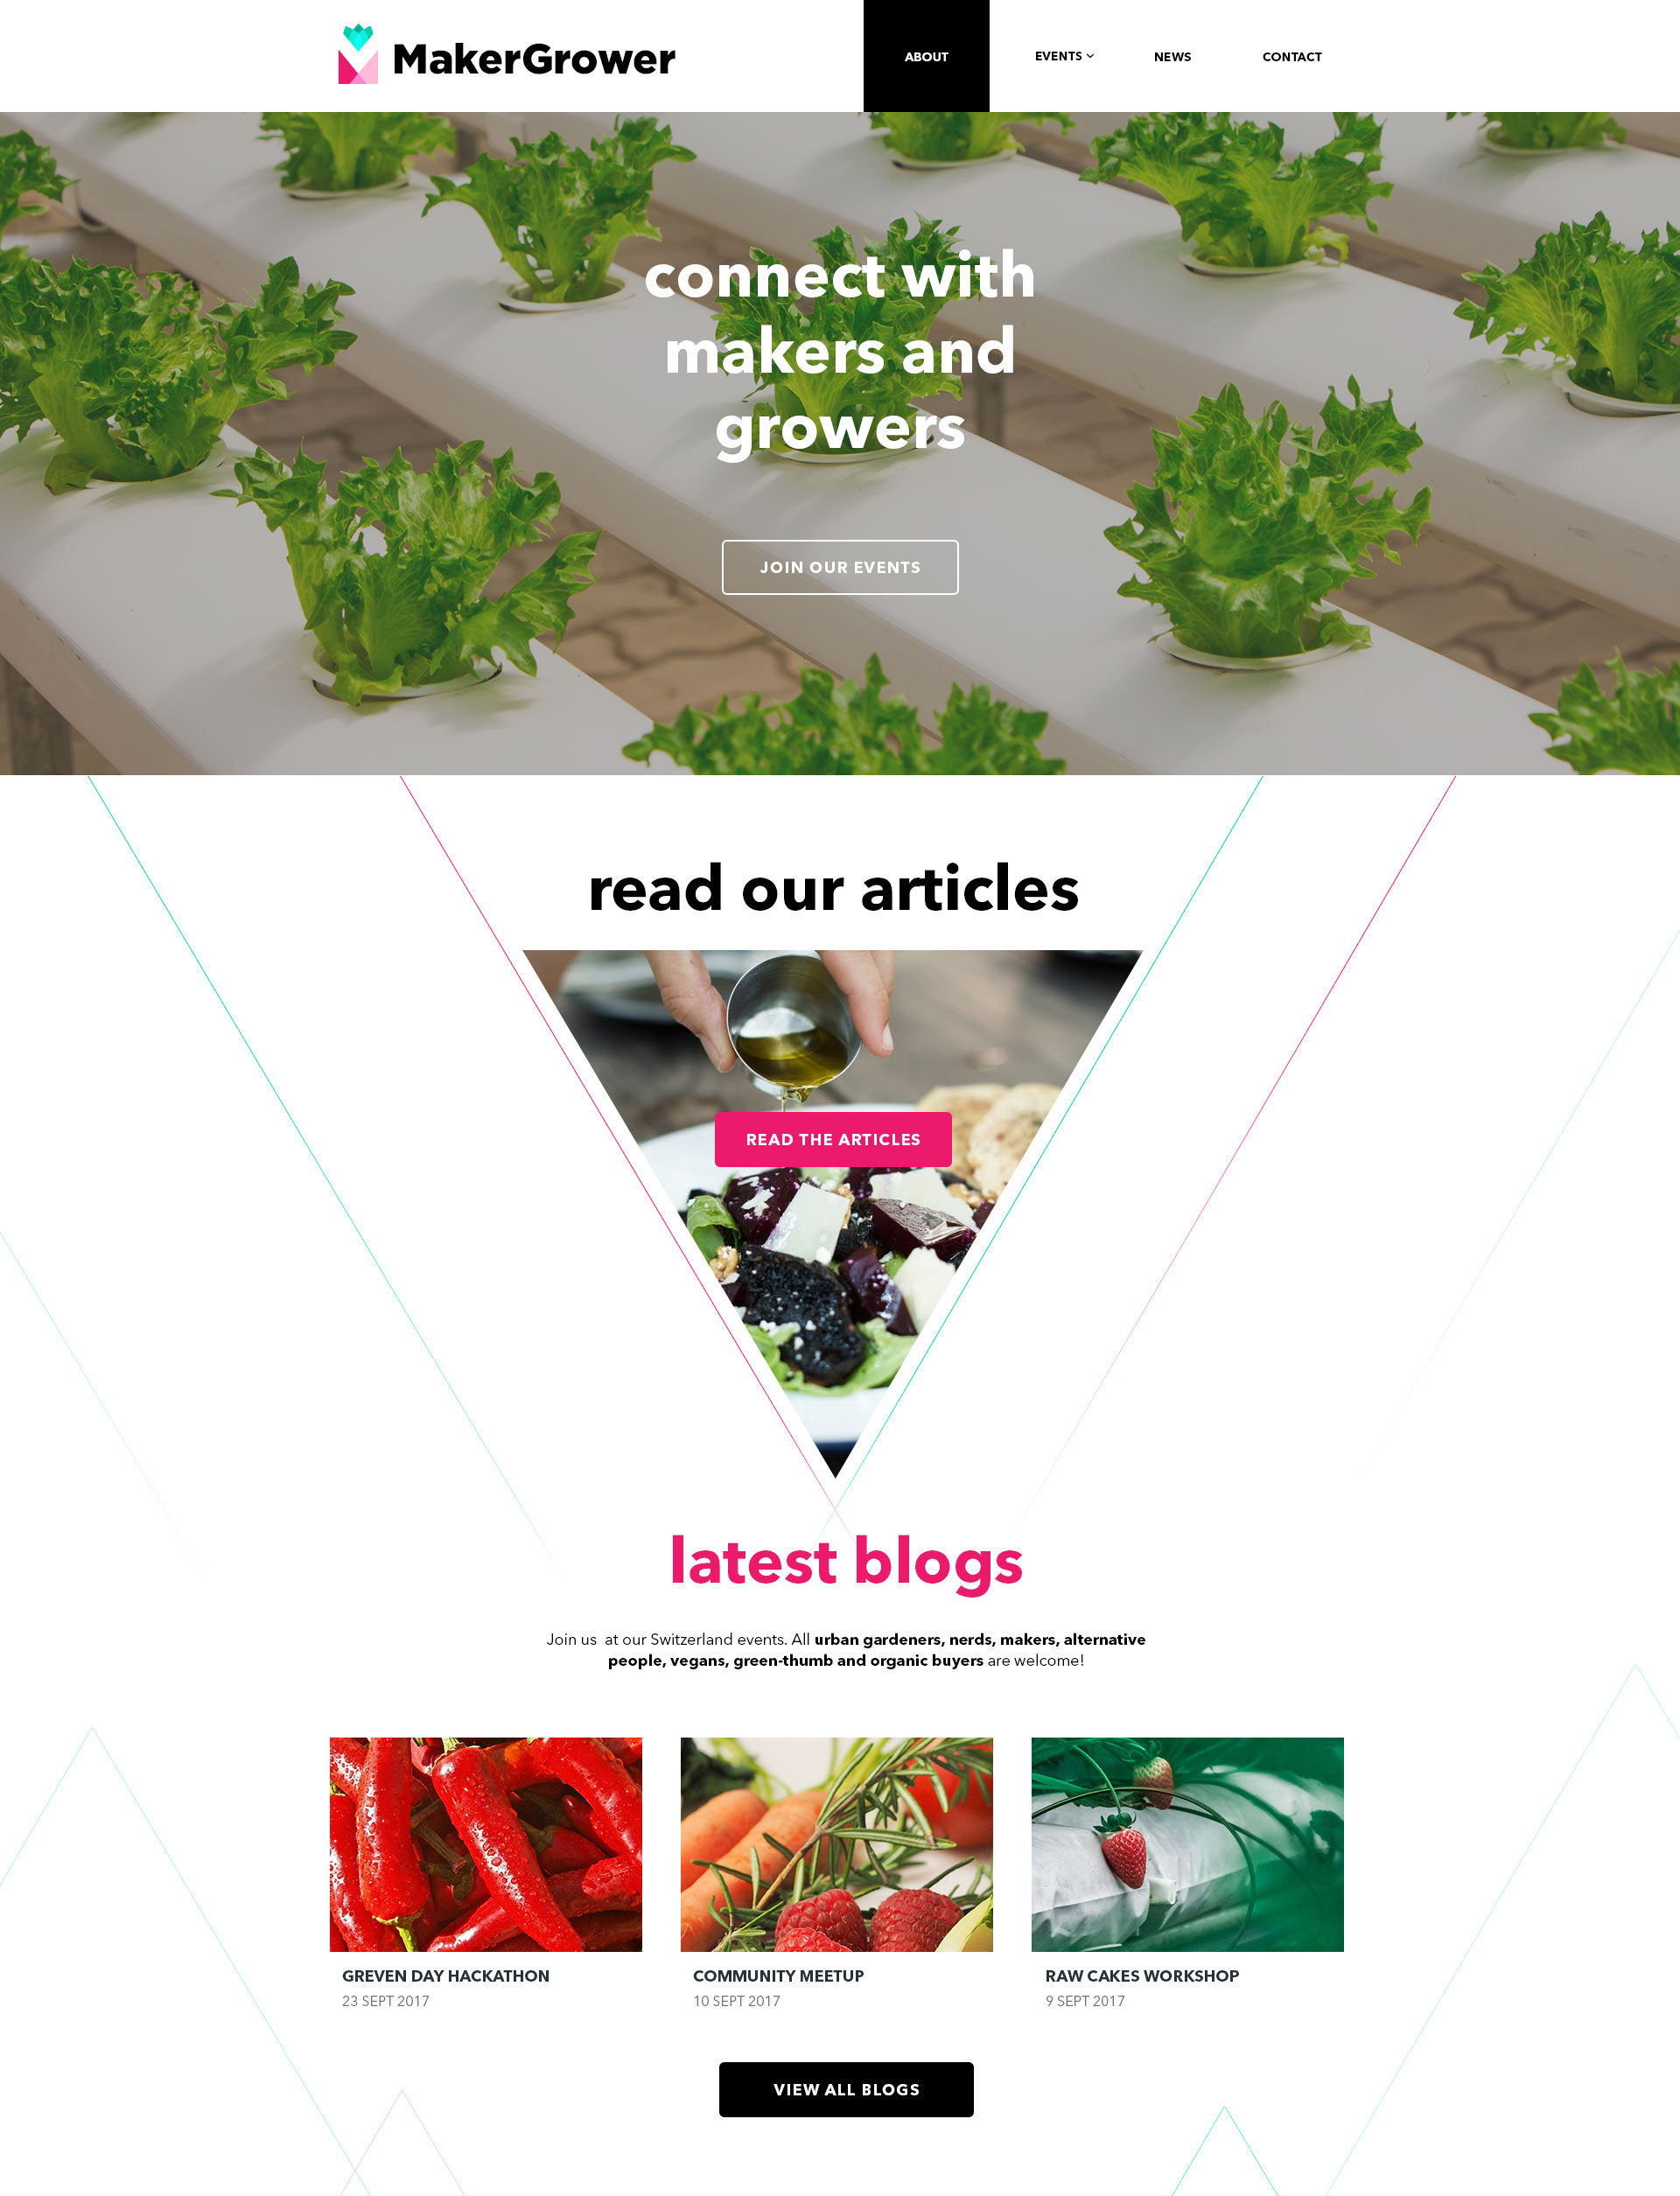 MakerGrower - Web Design - ReallusionDesign